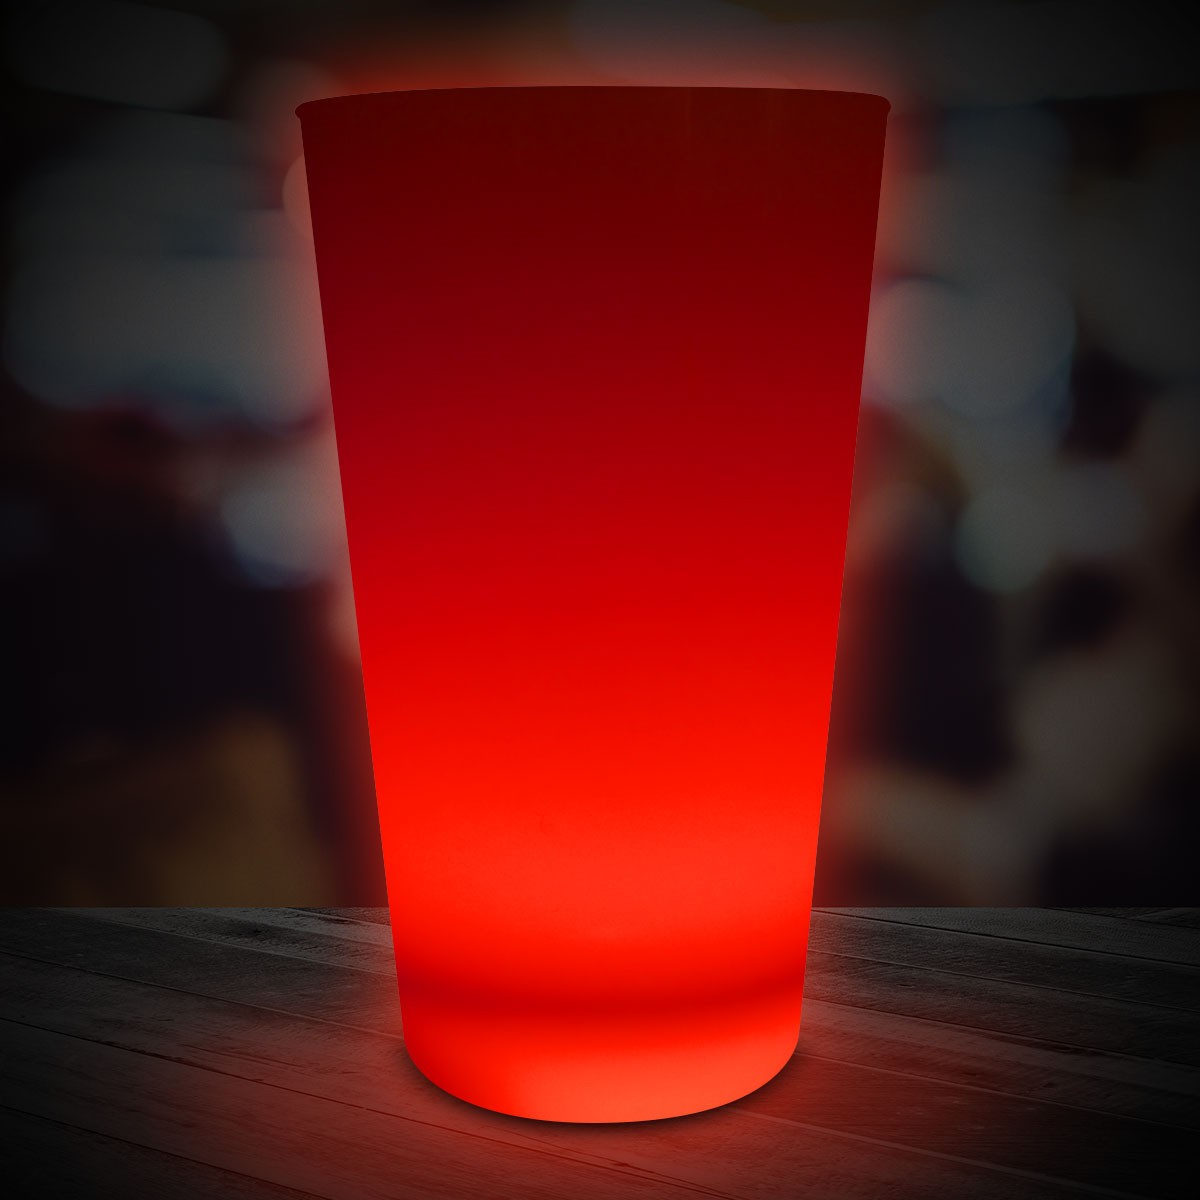 RED 16OZNEON LOOK PINT GLASS